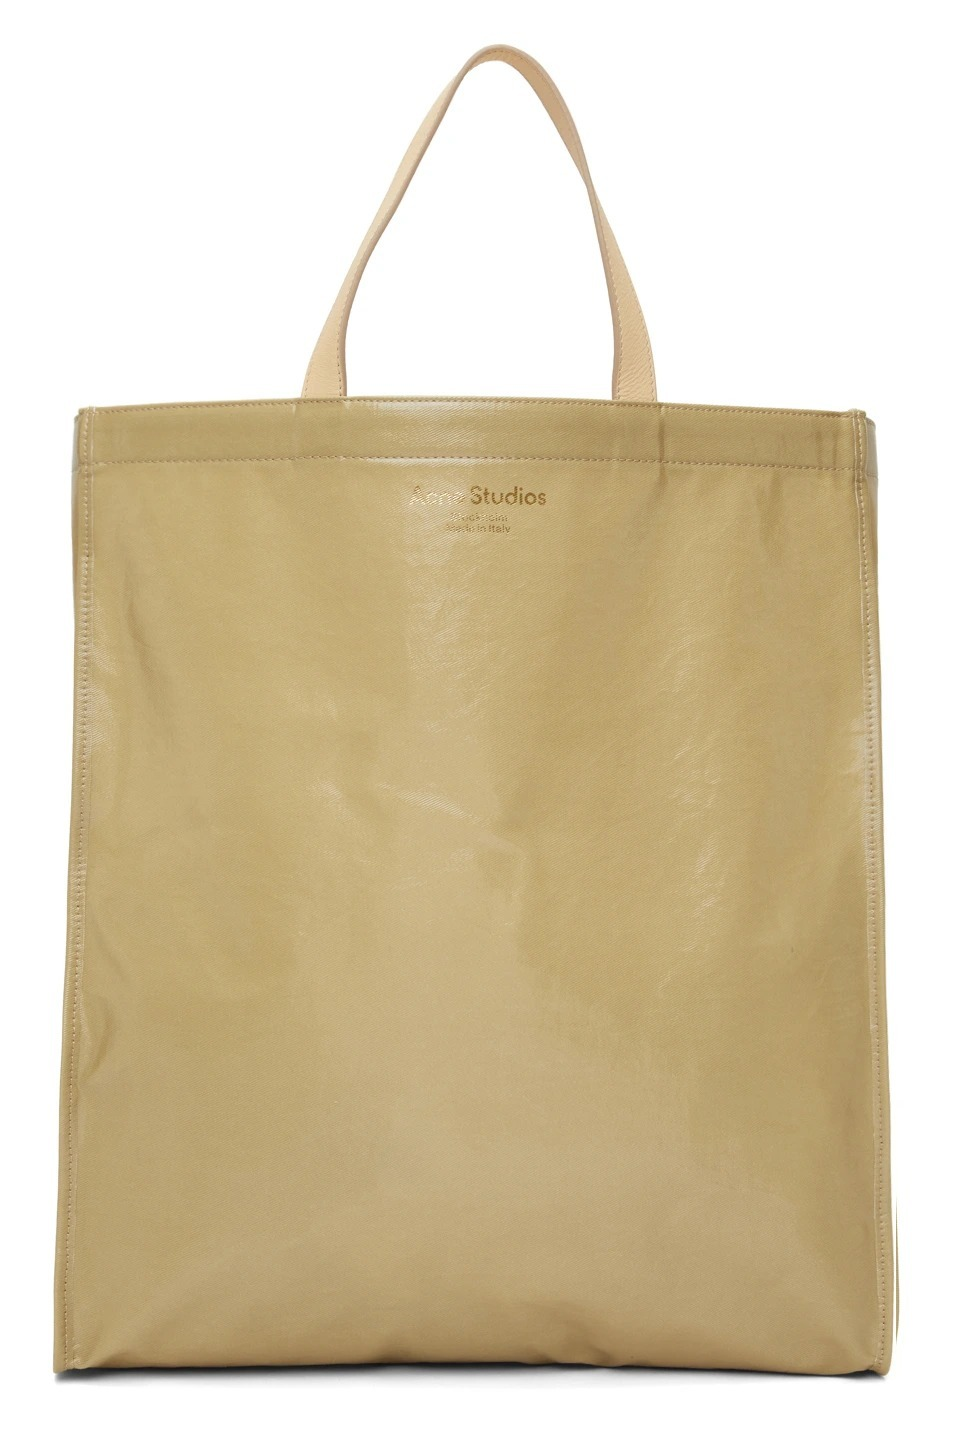 Acne Oilcloth shiny tote bag beige オイルキャンバストート (Acne/トートバッグ) 72153897